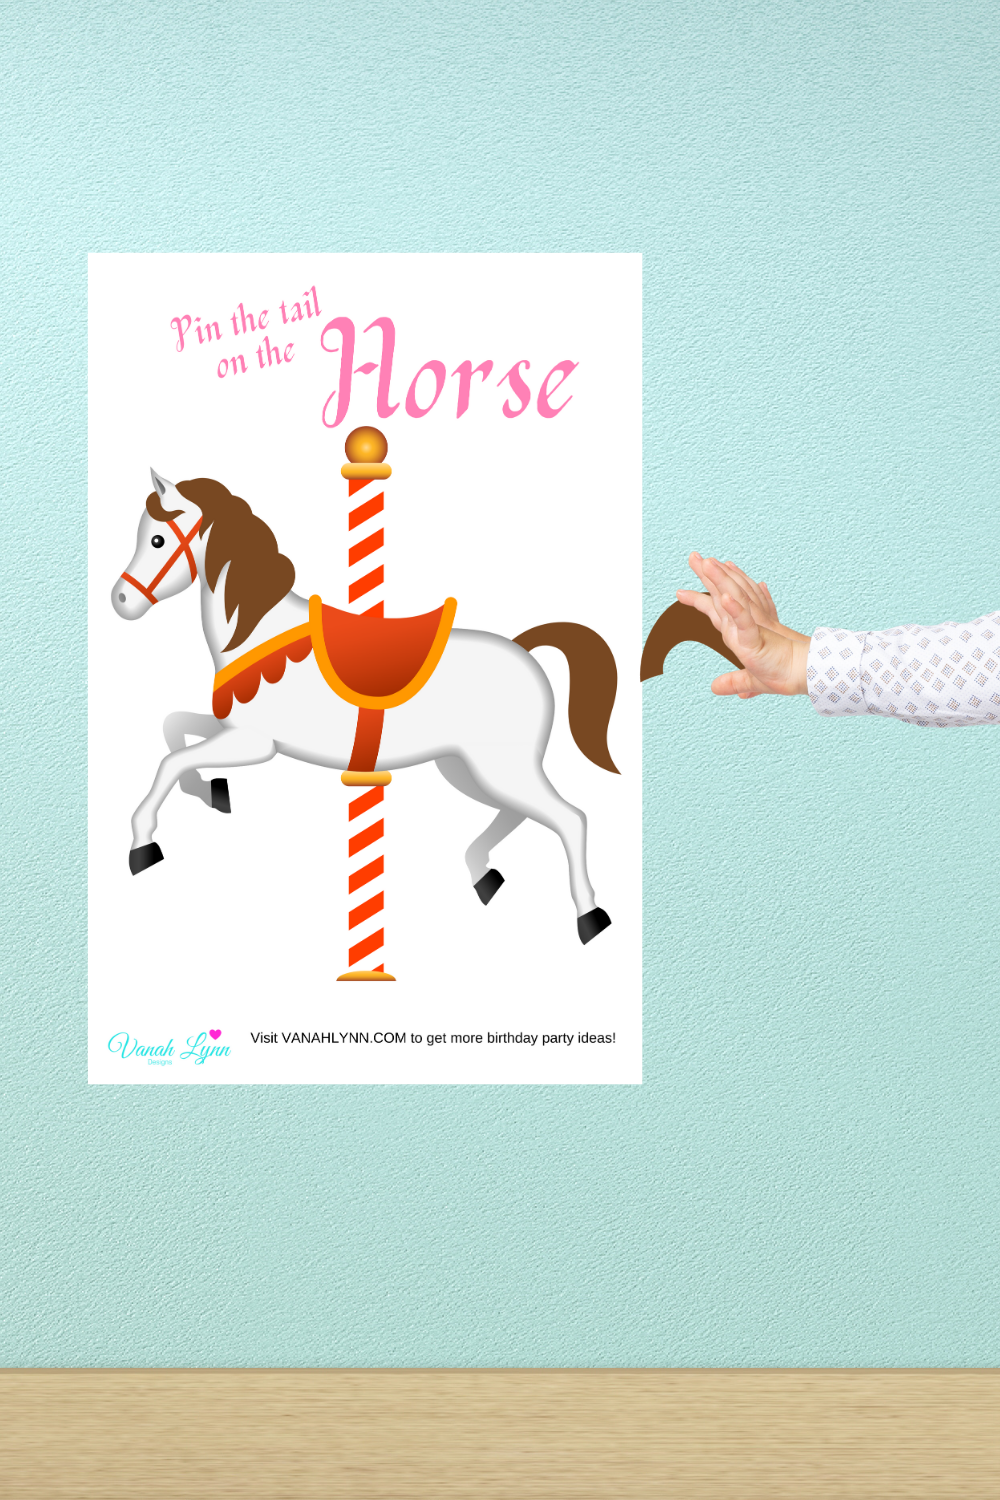 carousel birthday party activities for kids